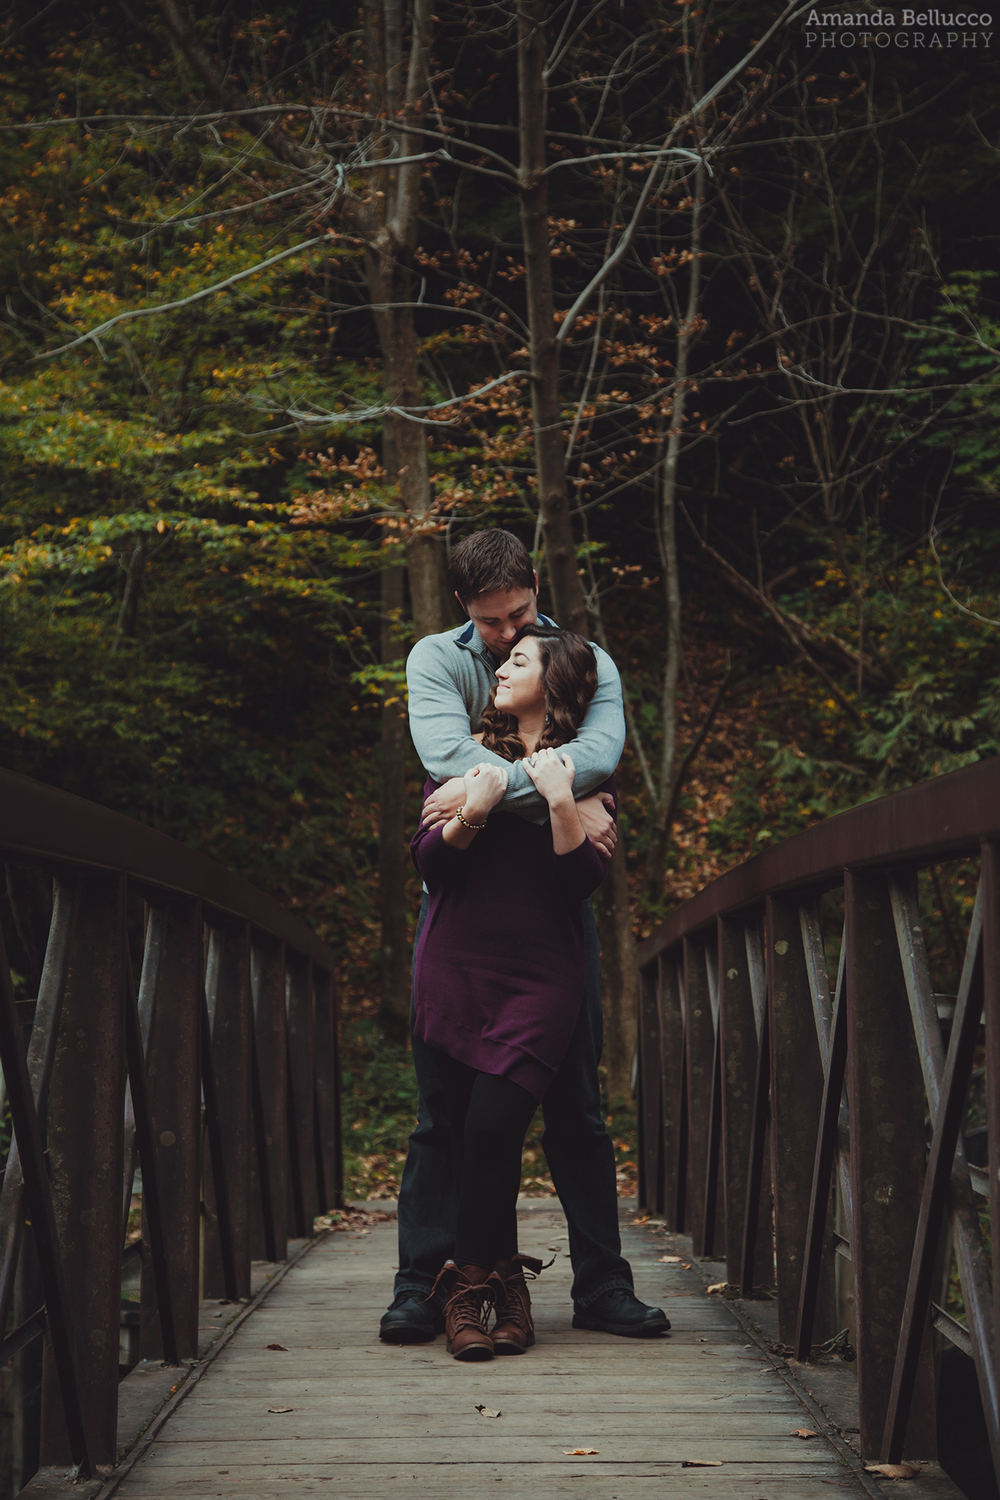 syacuse_engagement_wedding_photographers_17.jpg